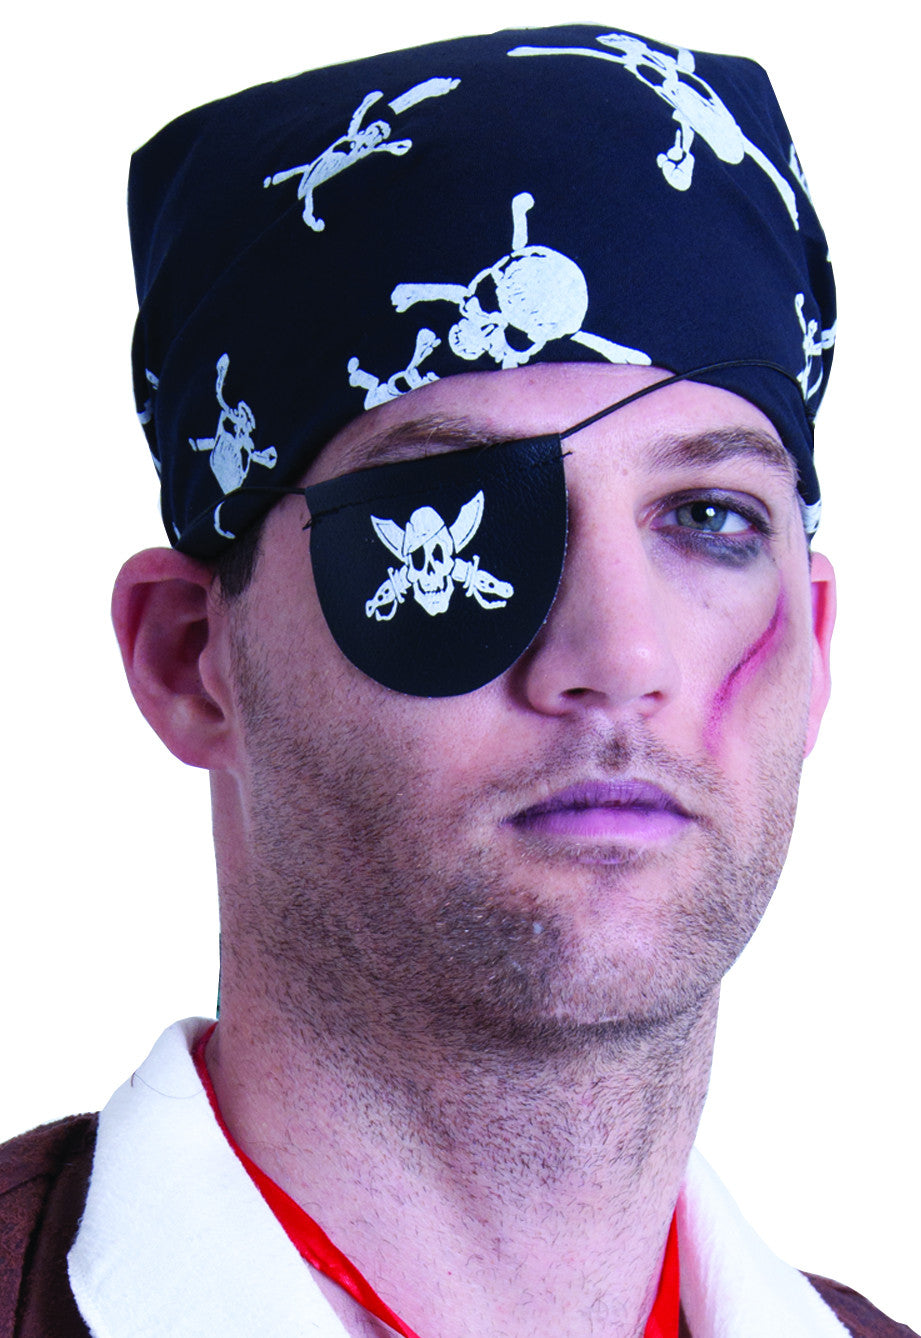 Pirate Eyepatch w/Skull & Cross Bones